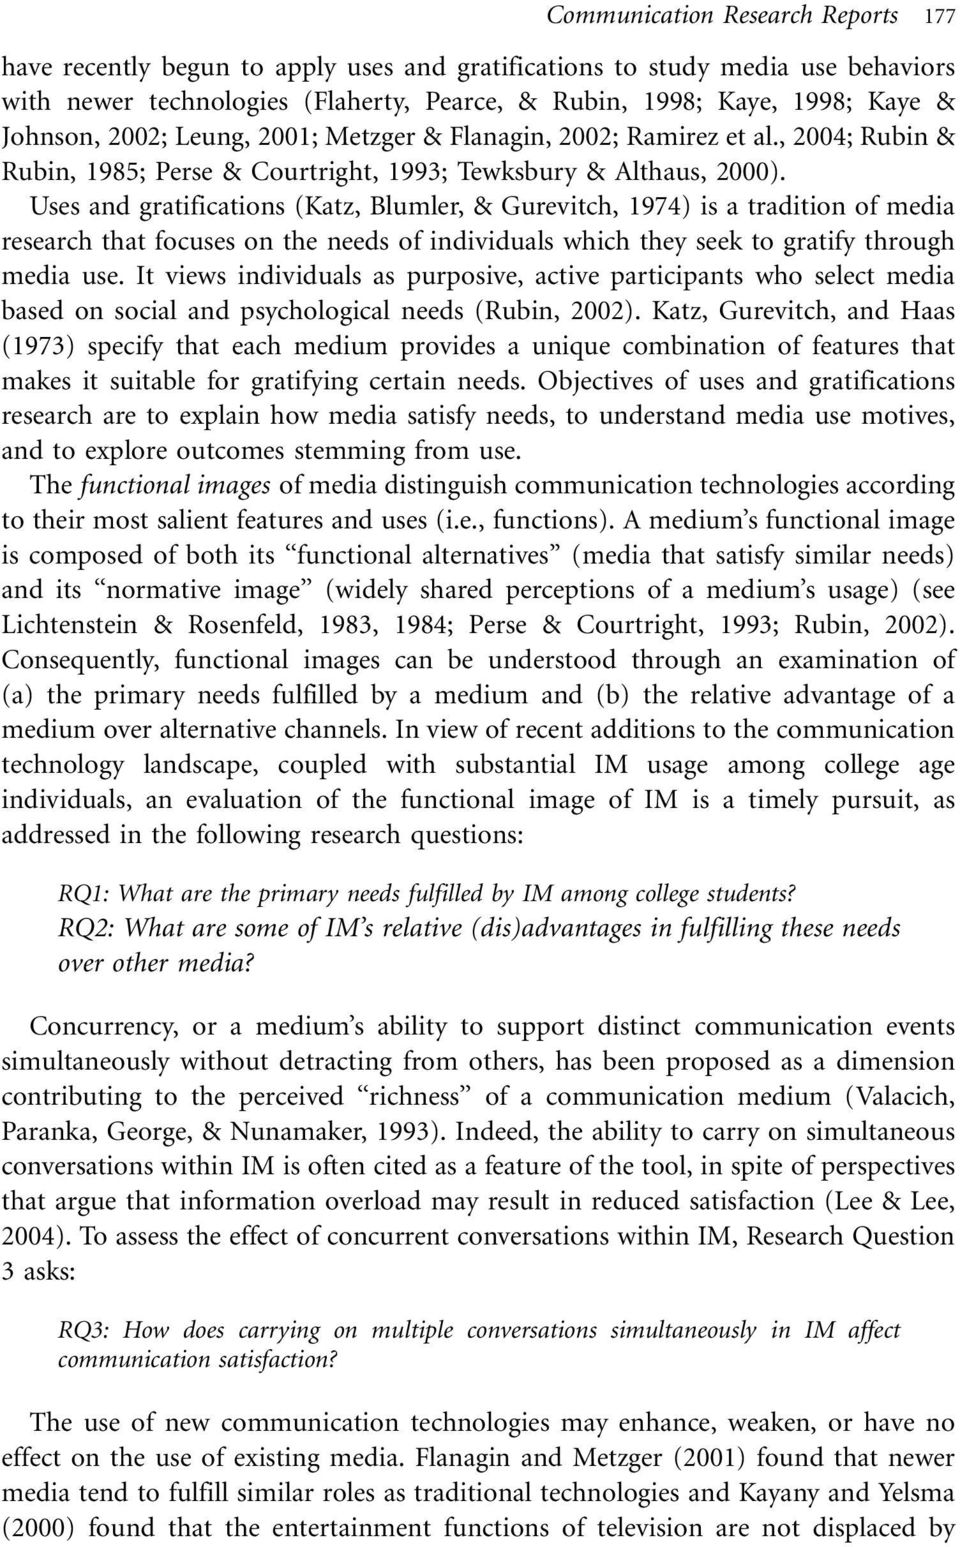 Uses and gratifications (Katz, Blumler, & Gurevitch, 1974) is a tradition of media research that focuses on the needs of individuals which they seek to gratify through media use.